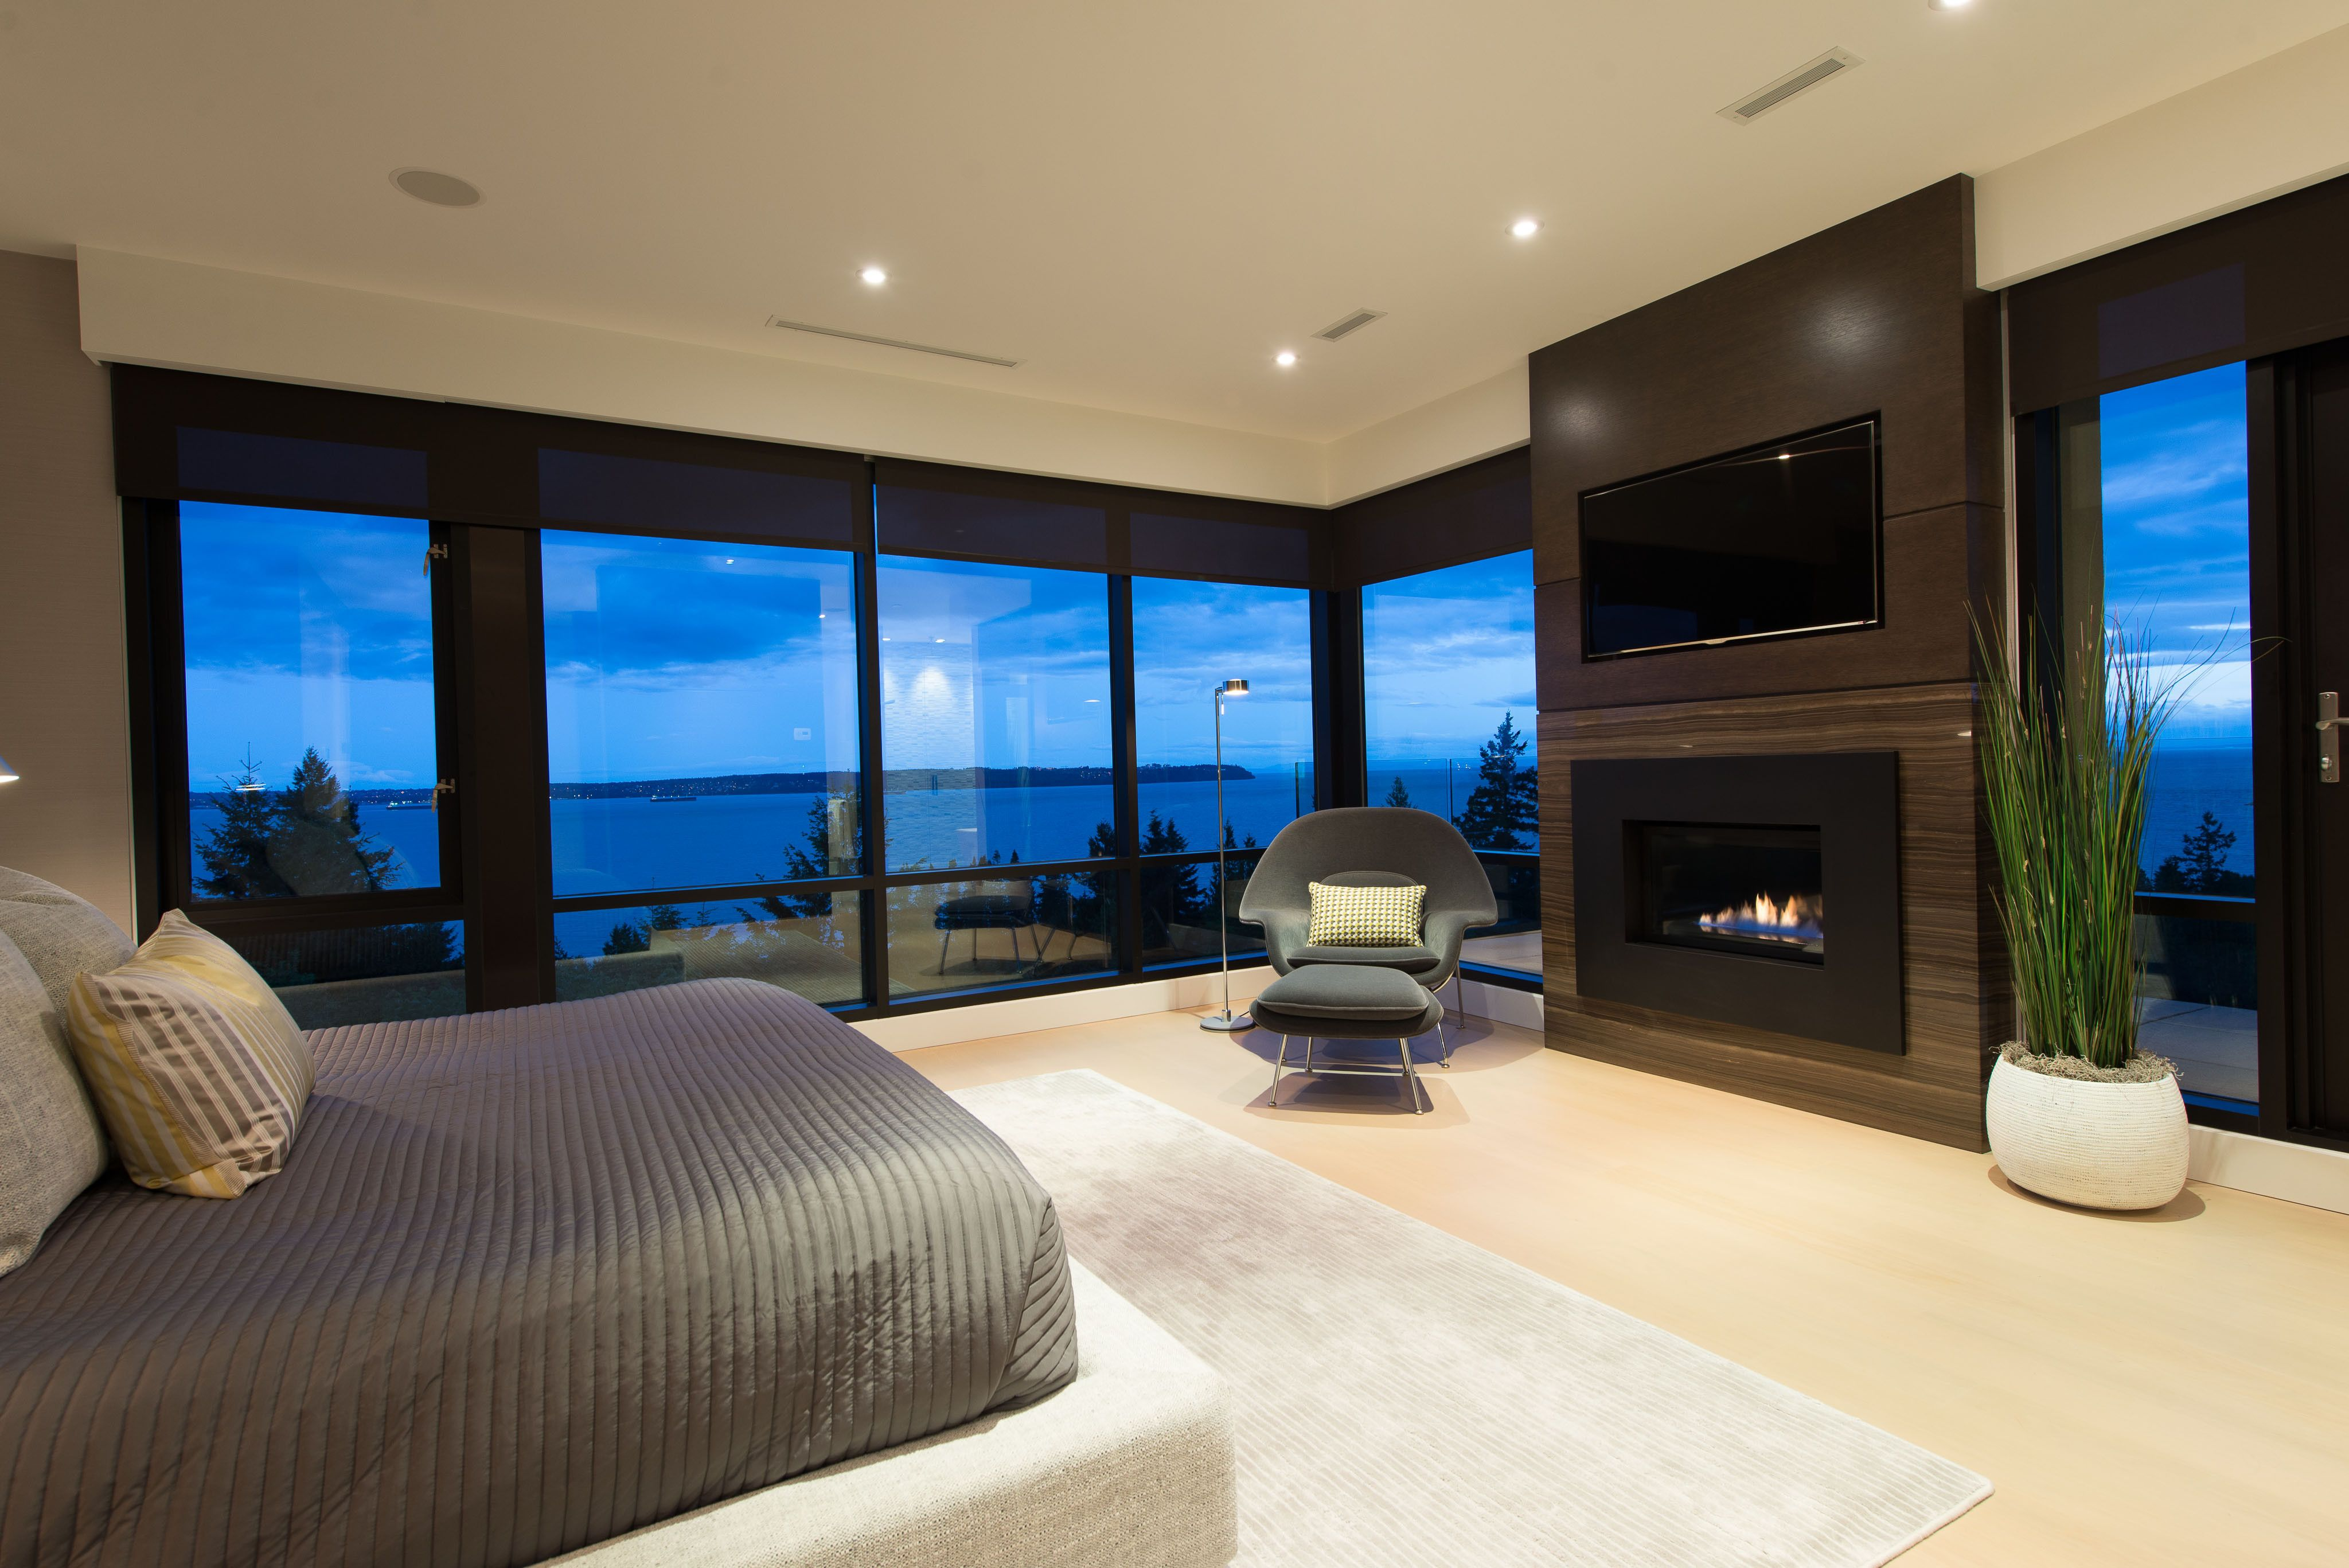 Burkehill Road West Vancouver Sold Brand New - Burkehill residence canada